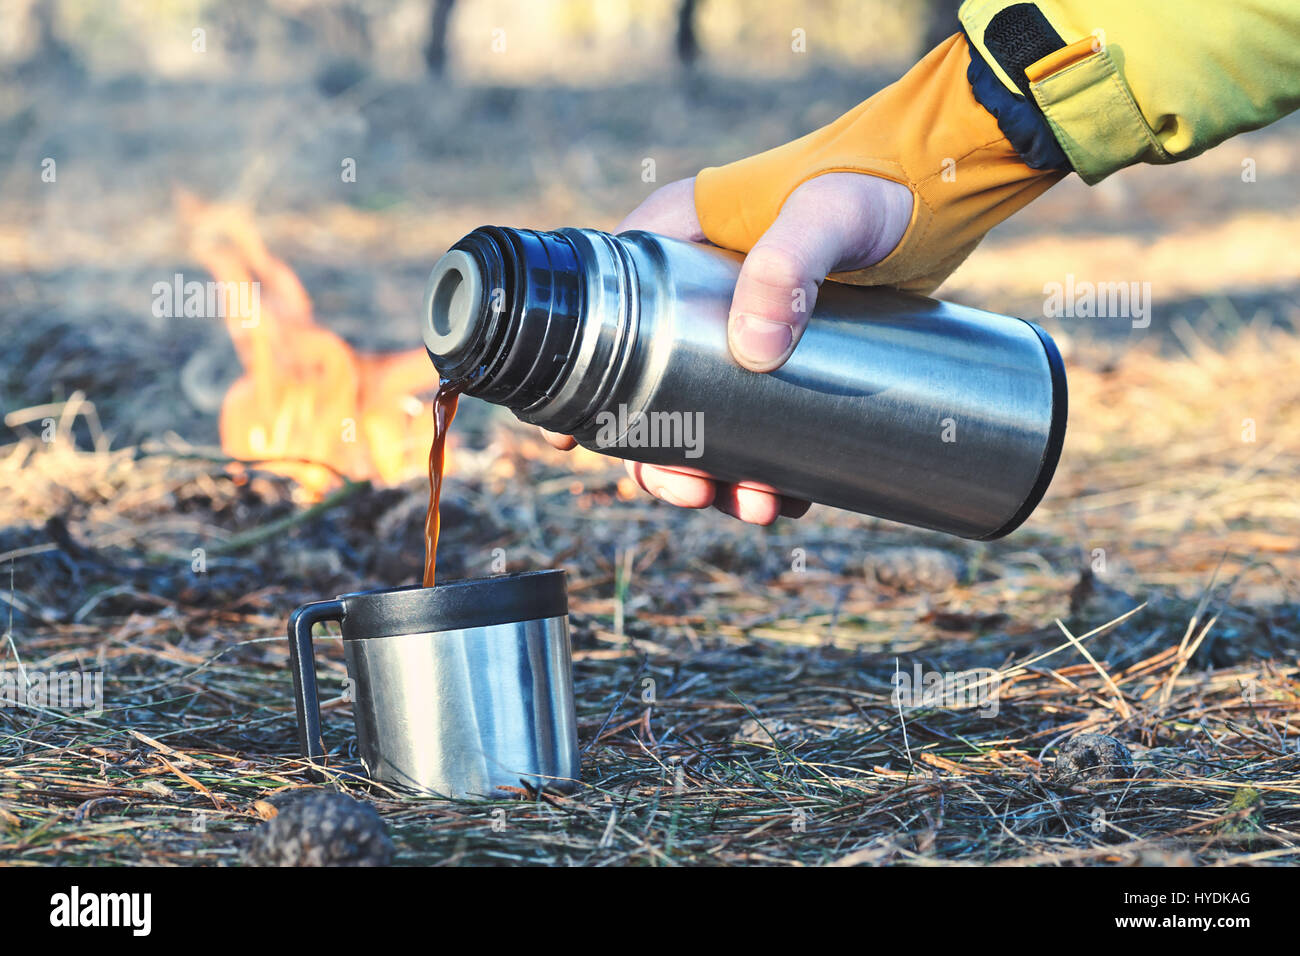 Man pours in a cup or mug hot coffee, tea or mokka from a thermos bottle outdoor near the campfire in the forest, - Stock Image